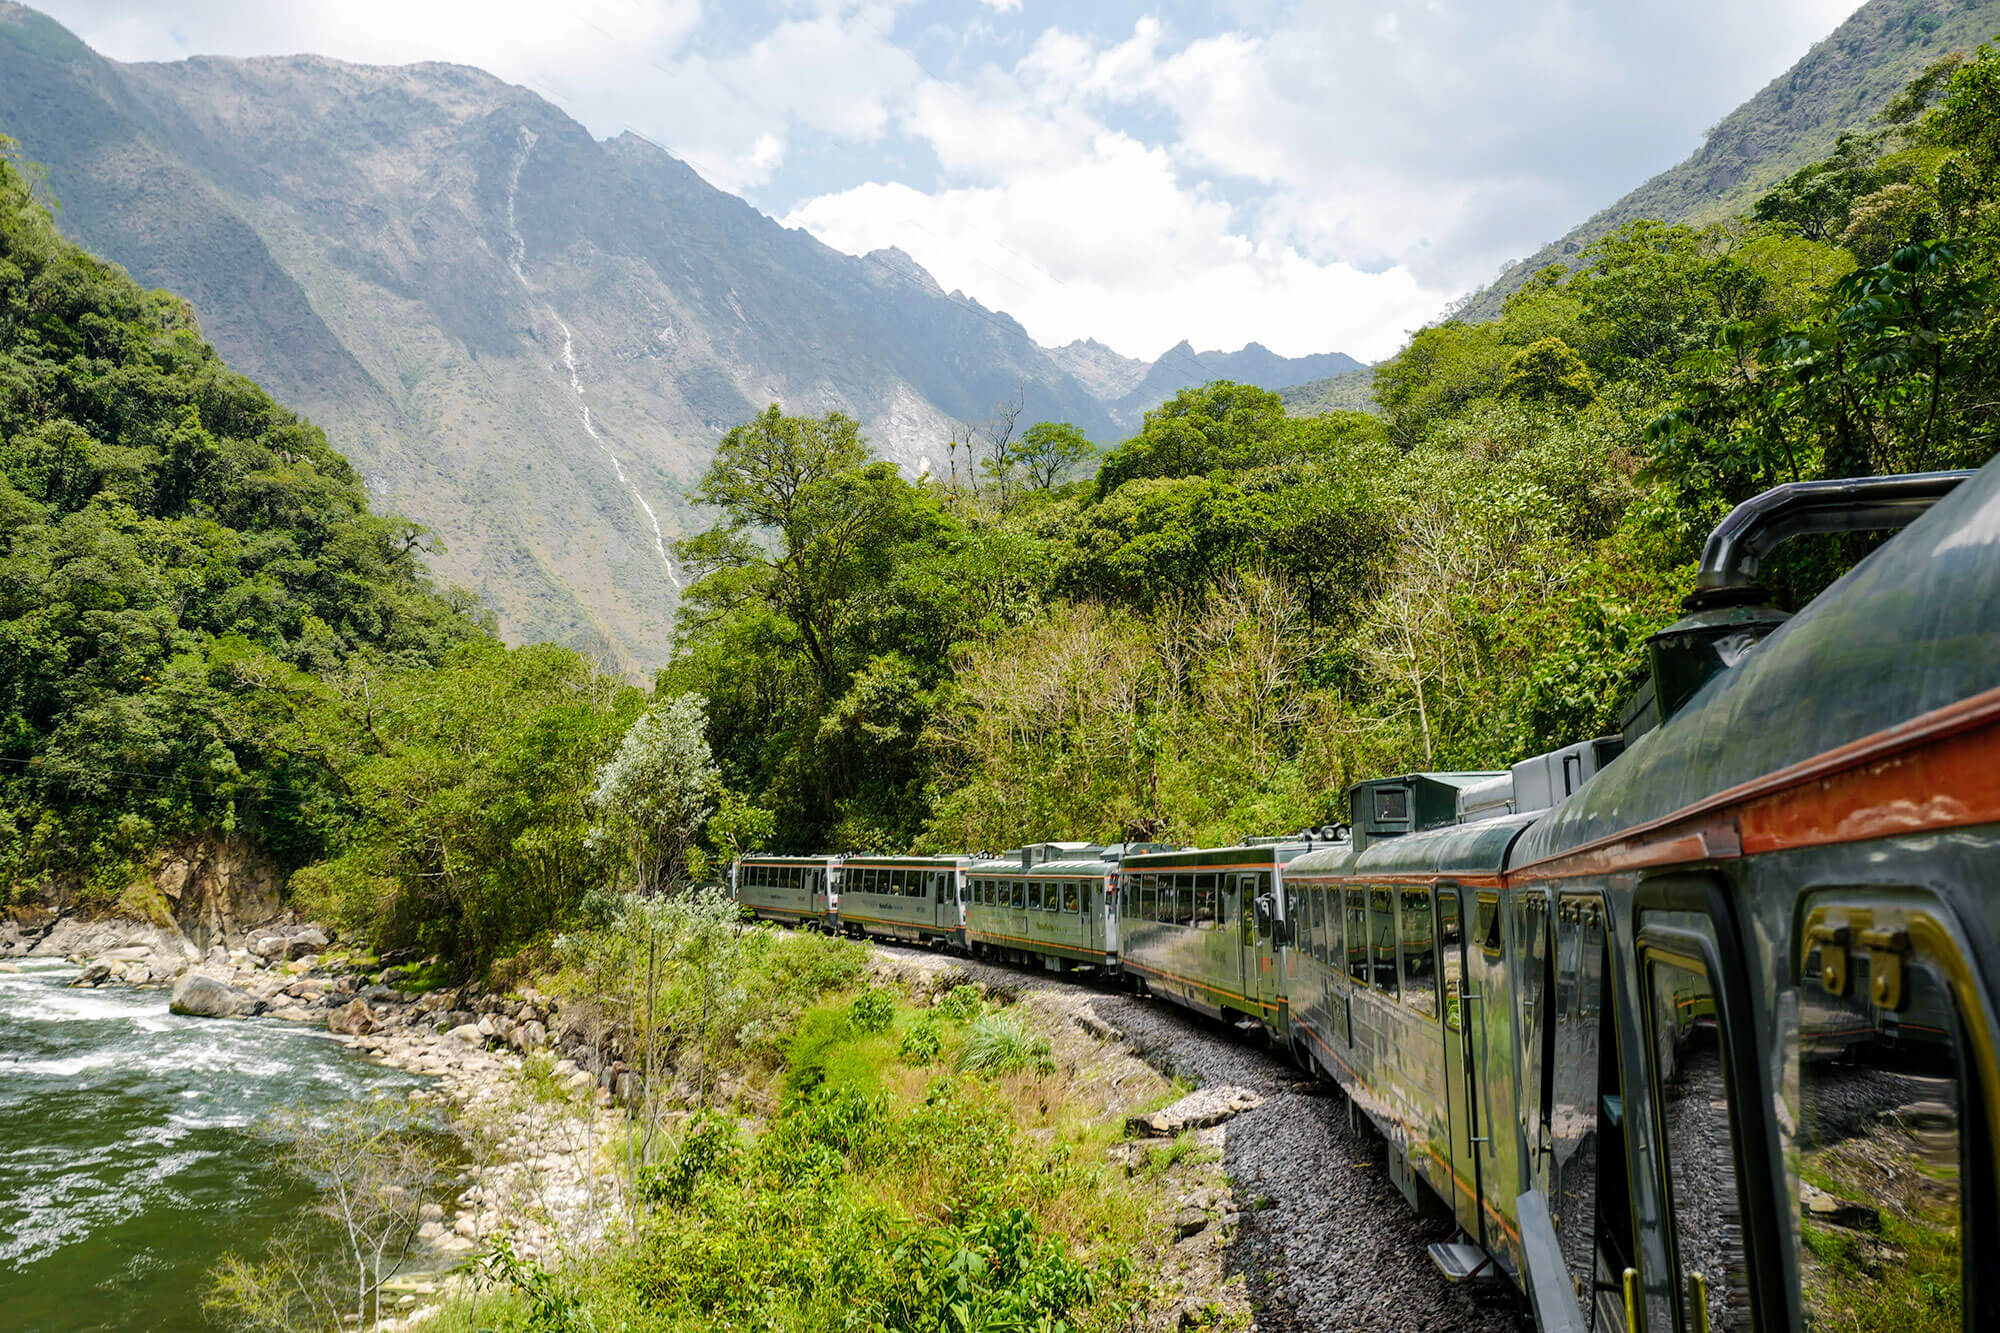 Incarail First Class Train on its way to Aguas Calientes